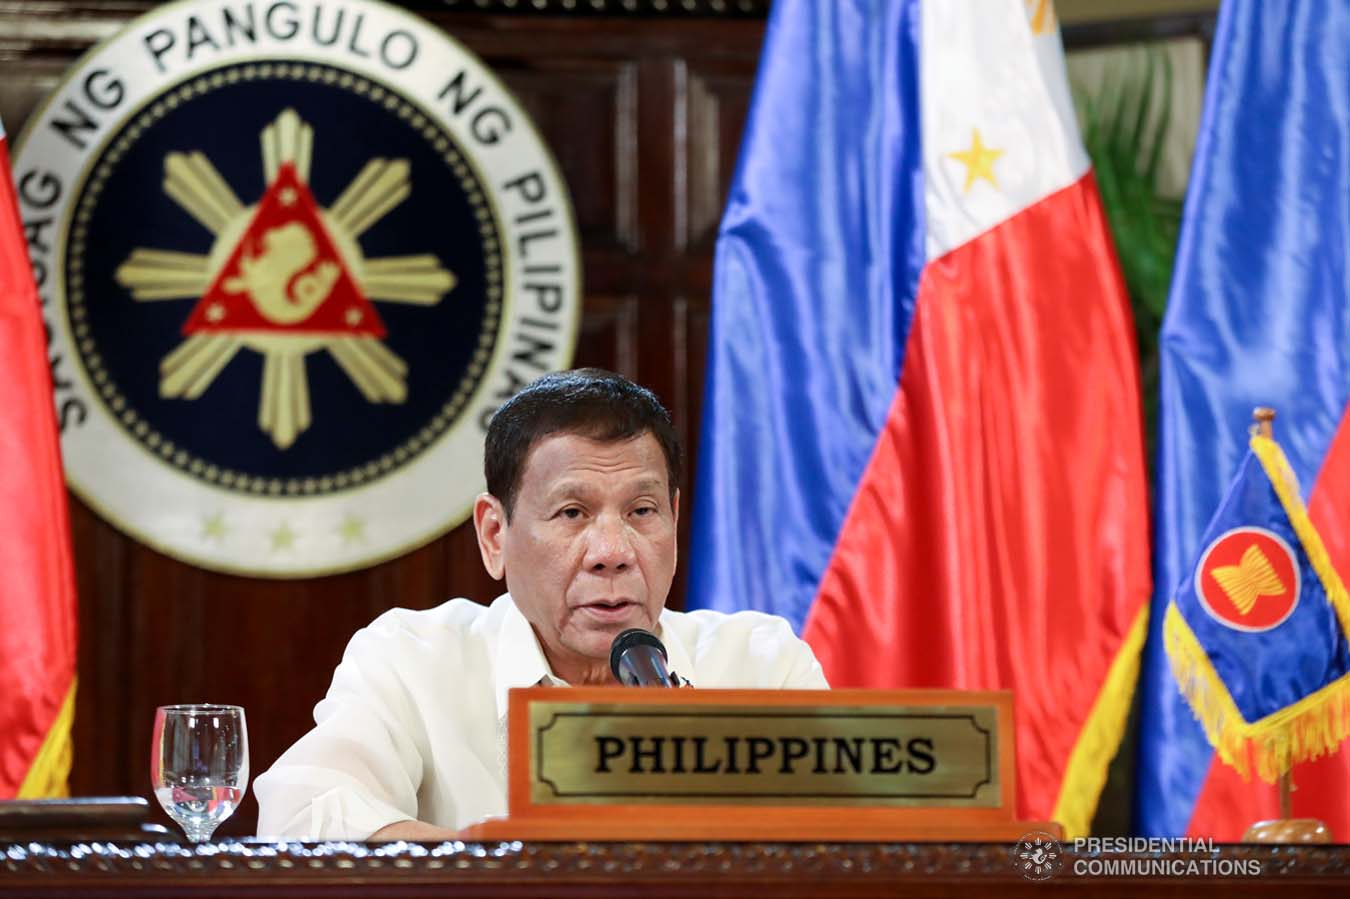 President Rodrigo Roa Duterte gives his intervention as he joins other leaders from the Association of Southeast Asian Nations (ASEAN) member countries, the Republic of Korea, People's Republic of China and Japan during the special ASEAN Plus Three Summit on Covid-19 video conference at the Malago Clubhouse in Malacañang on April 14, 2020. ACE MORANDANTE/PRESIDENTIAL PHOTOS